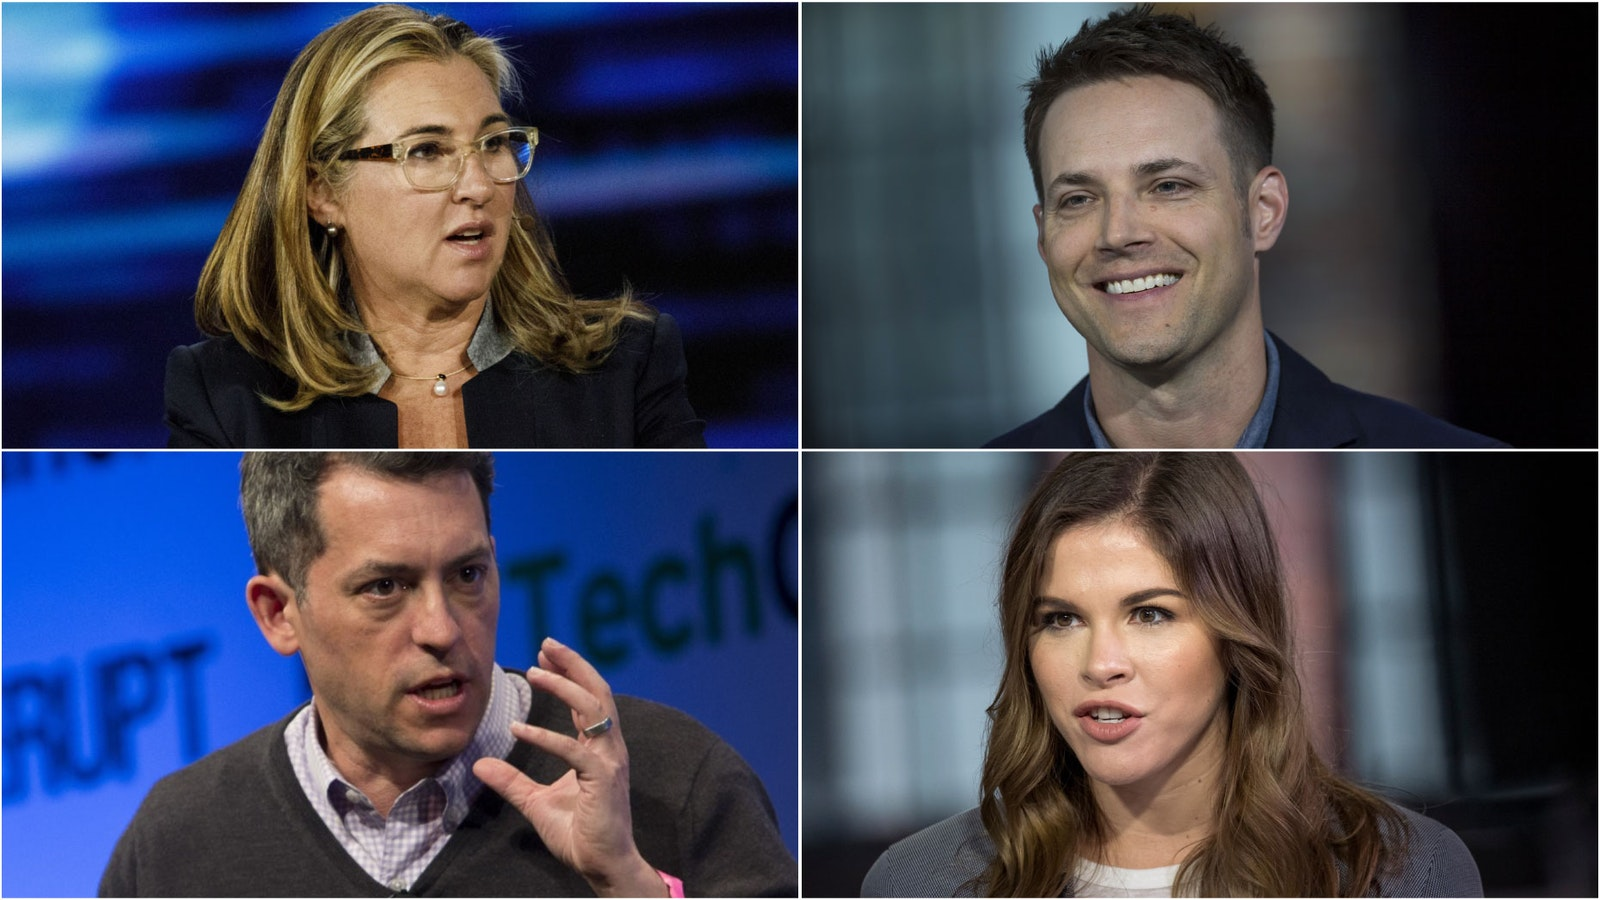 Clockwise from top left: Vice CEO Nancy Dubuc; Offerup CEO Nick Huzar; Glossier CEO Emily Weiss; Vox Media CEO Jim Bankoff. Photos by Bloomberg